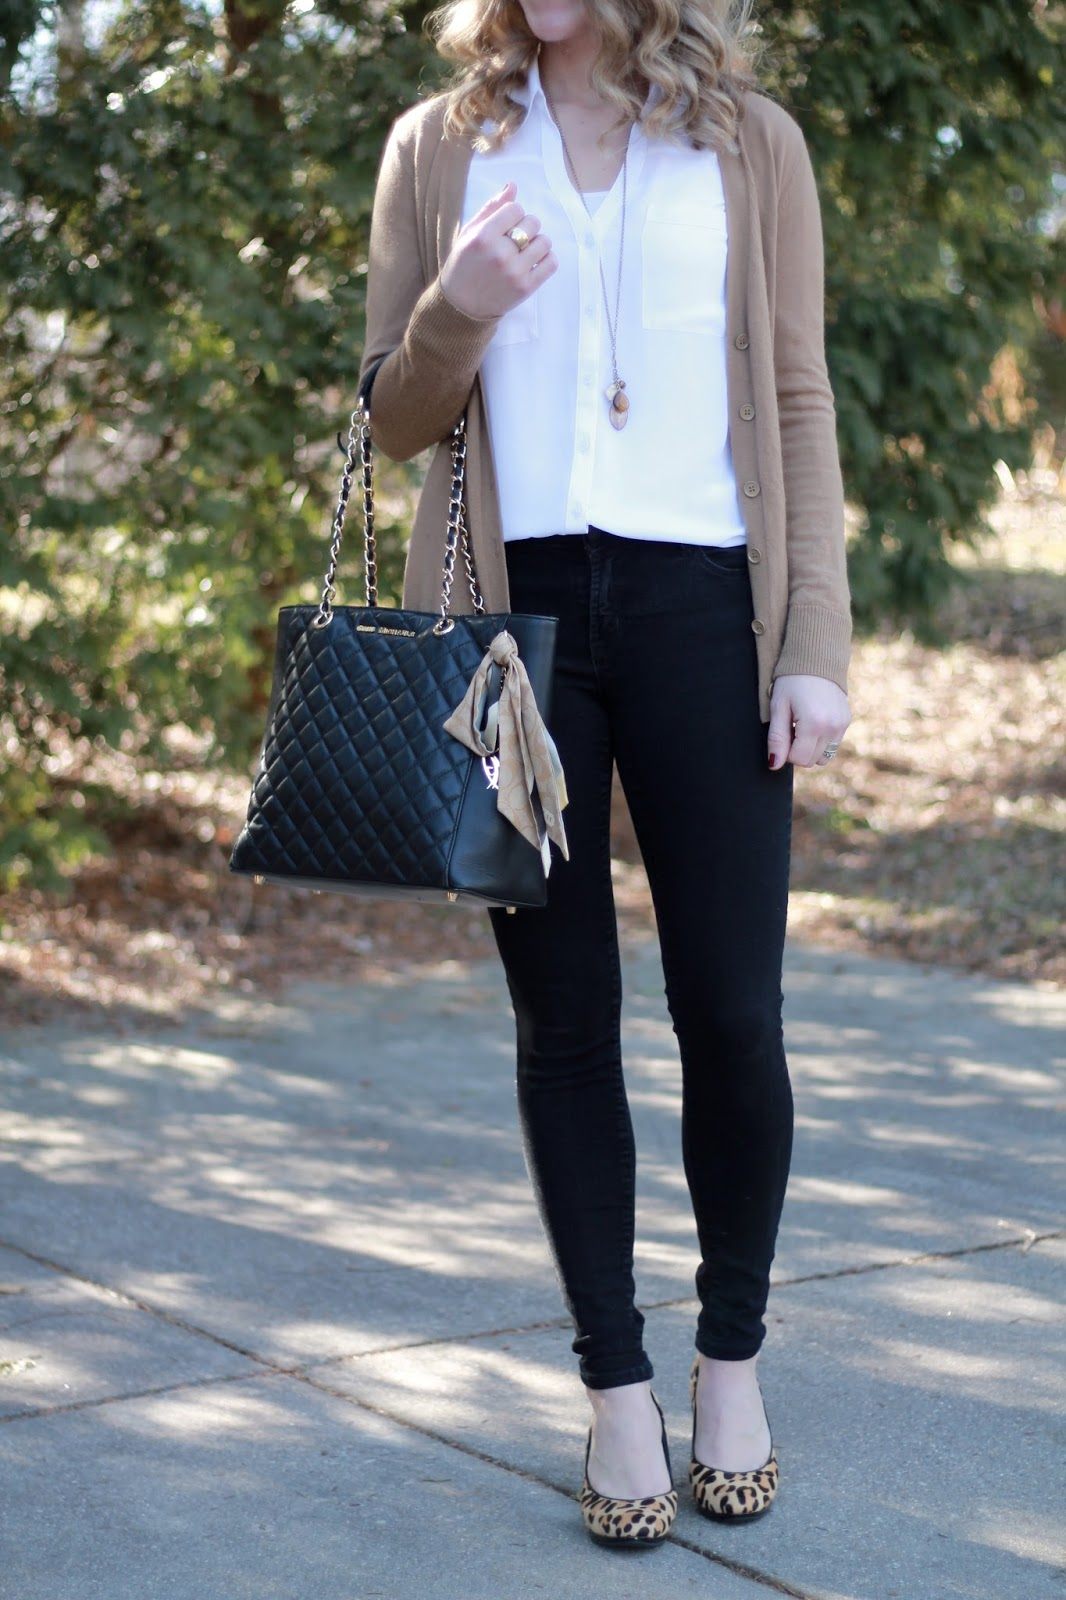 Express white portofino, camel tan cardigan, black jeans, leopard heels, Black quilted Greg Michaels tote